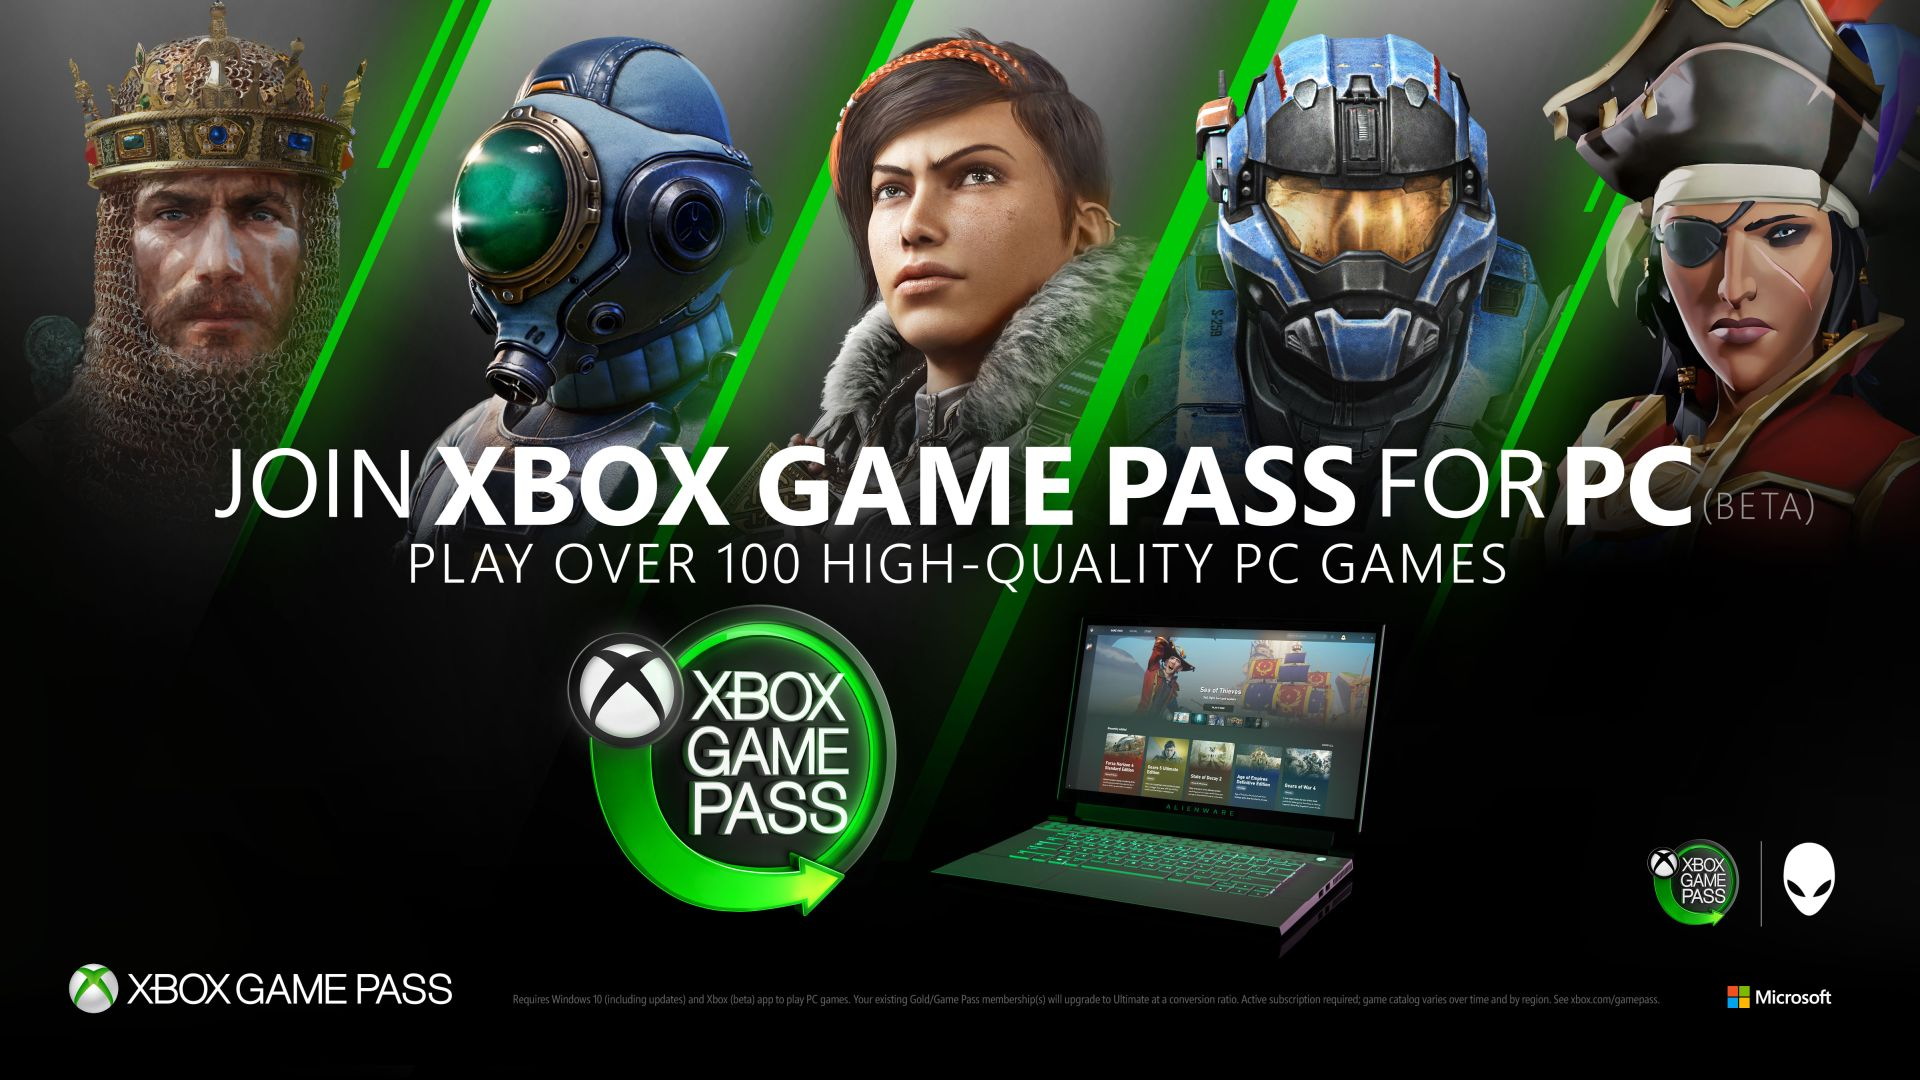 Xbox Game Pass for PC/Dell Promo